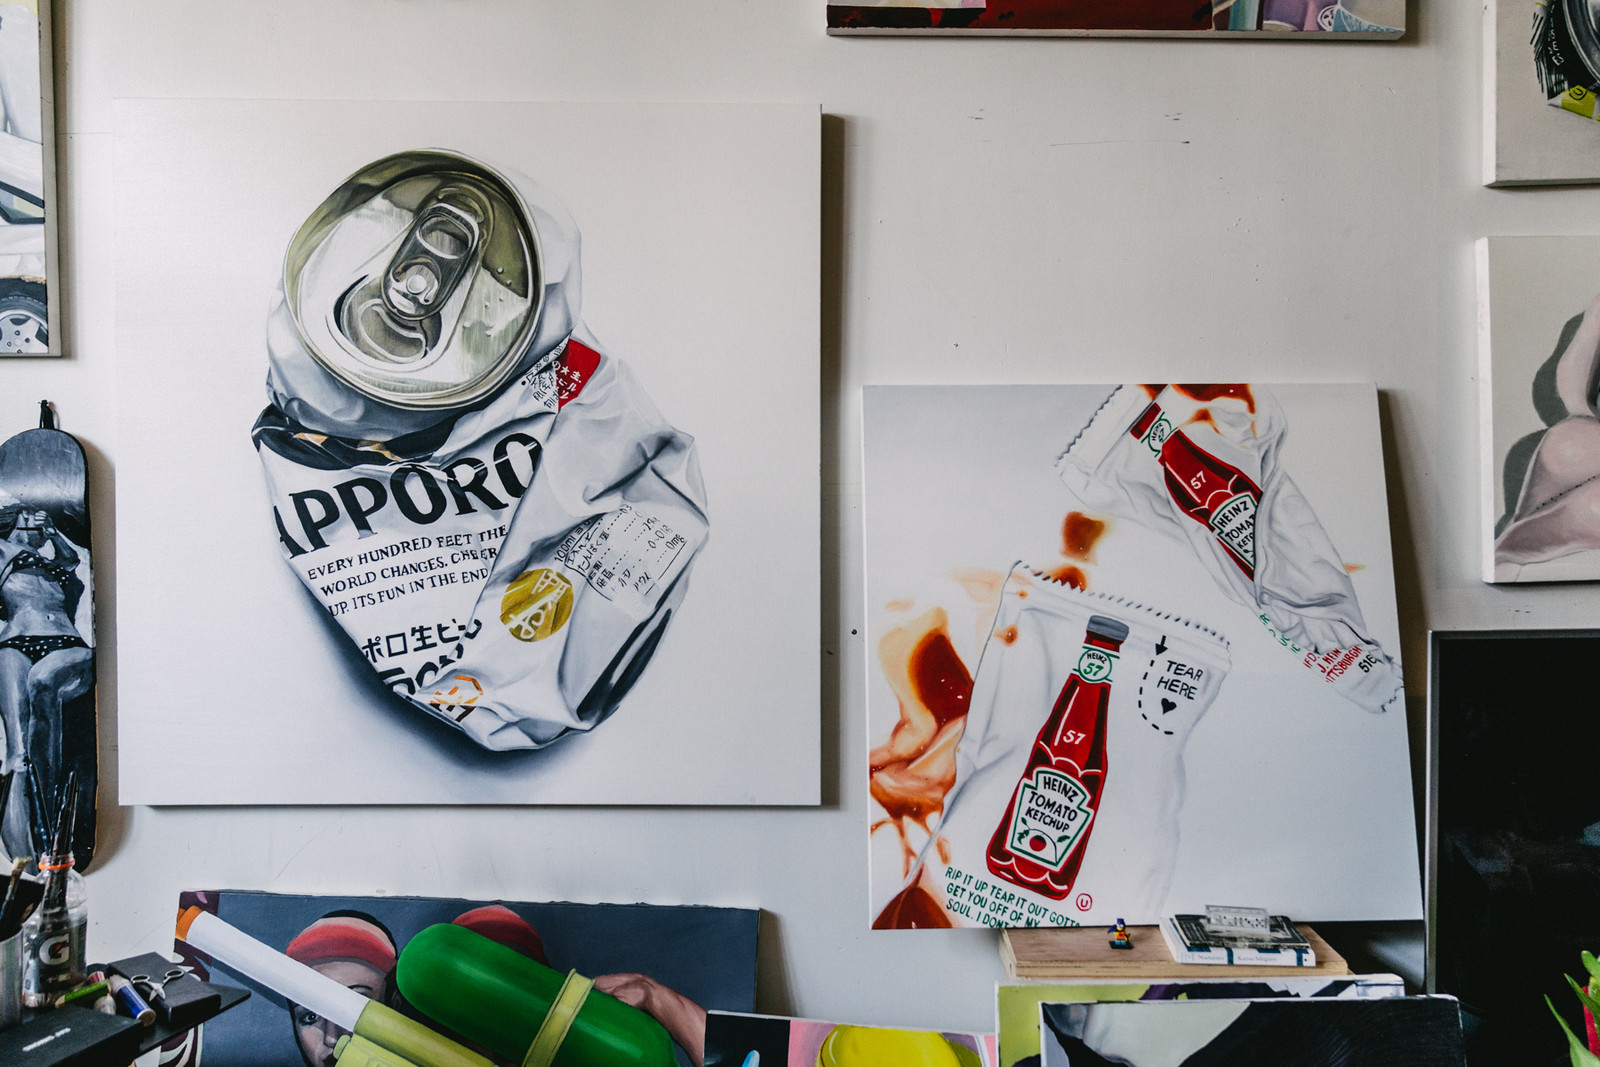 james evans pen and paper artworks paintings illustrations beer cans interviews sketches graphic design art